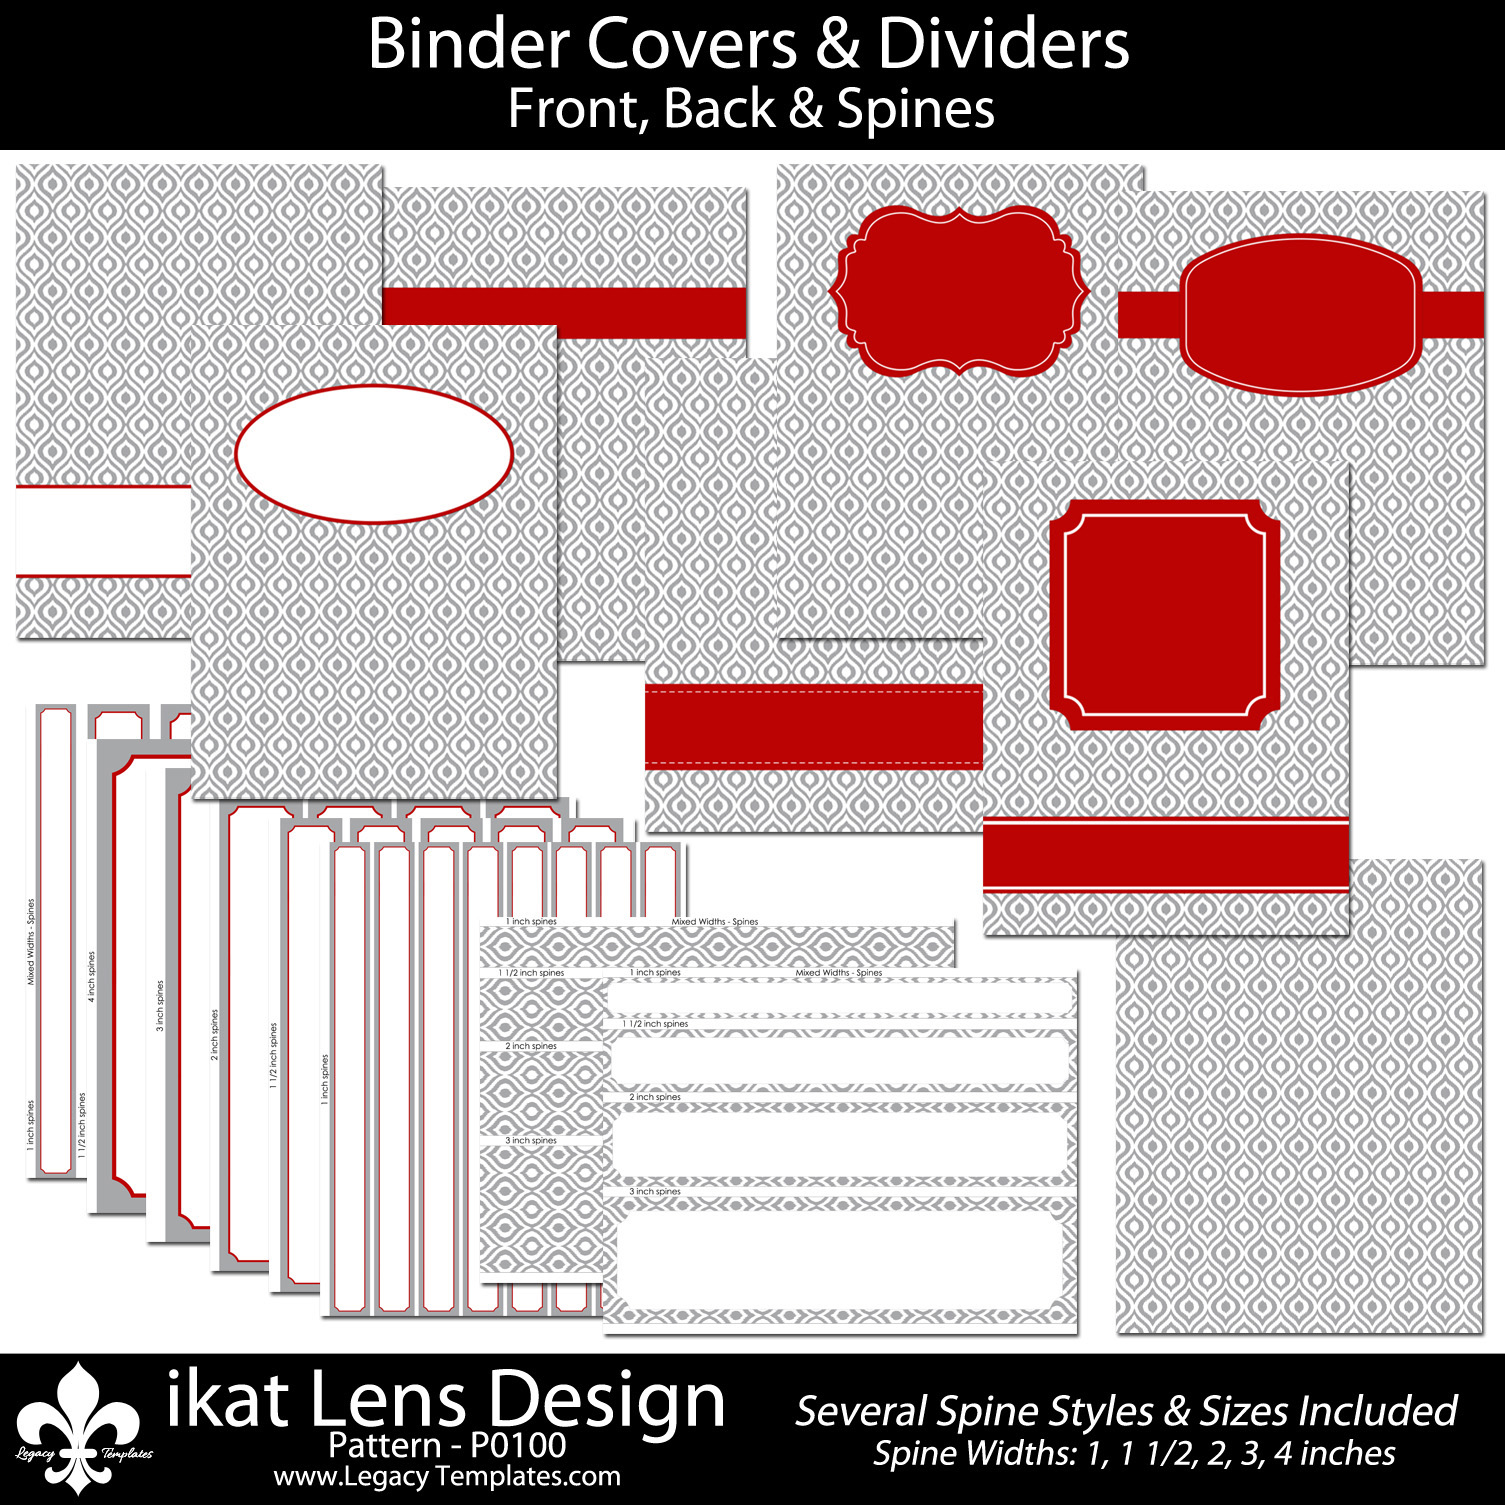 Gray Binder Cover With Colorful Labels & An Ikat Design